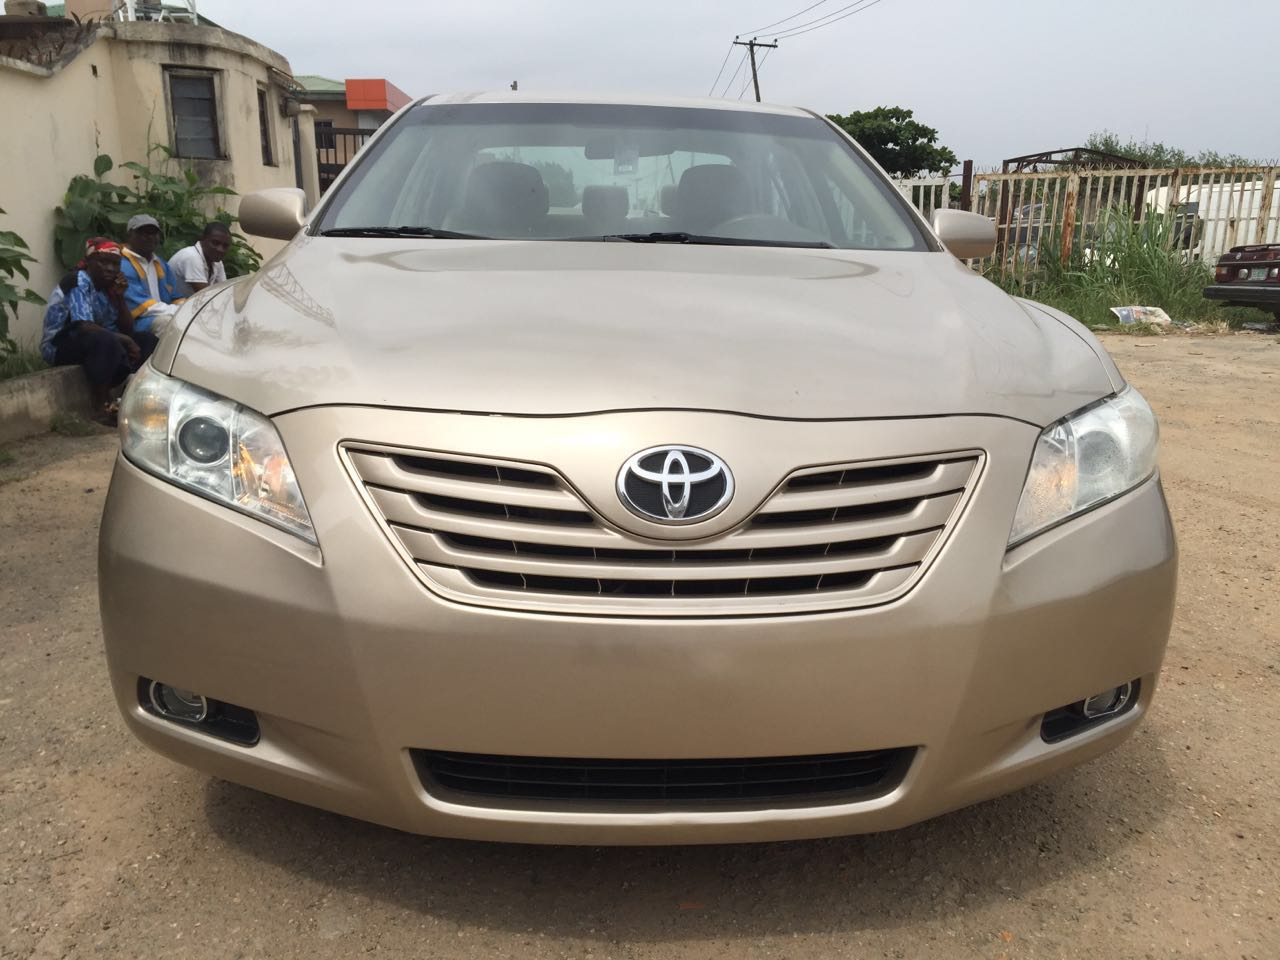 brand new toyota camry muscle all alphard 2.5 x a/t sold clean title le 60k miles autos